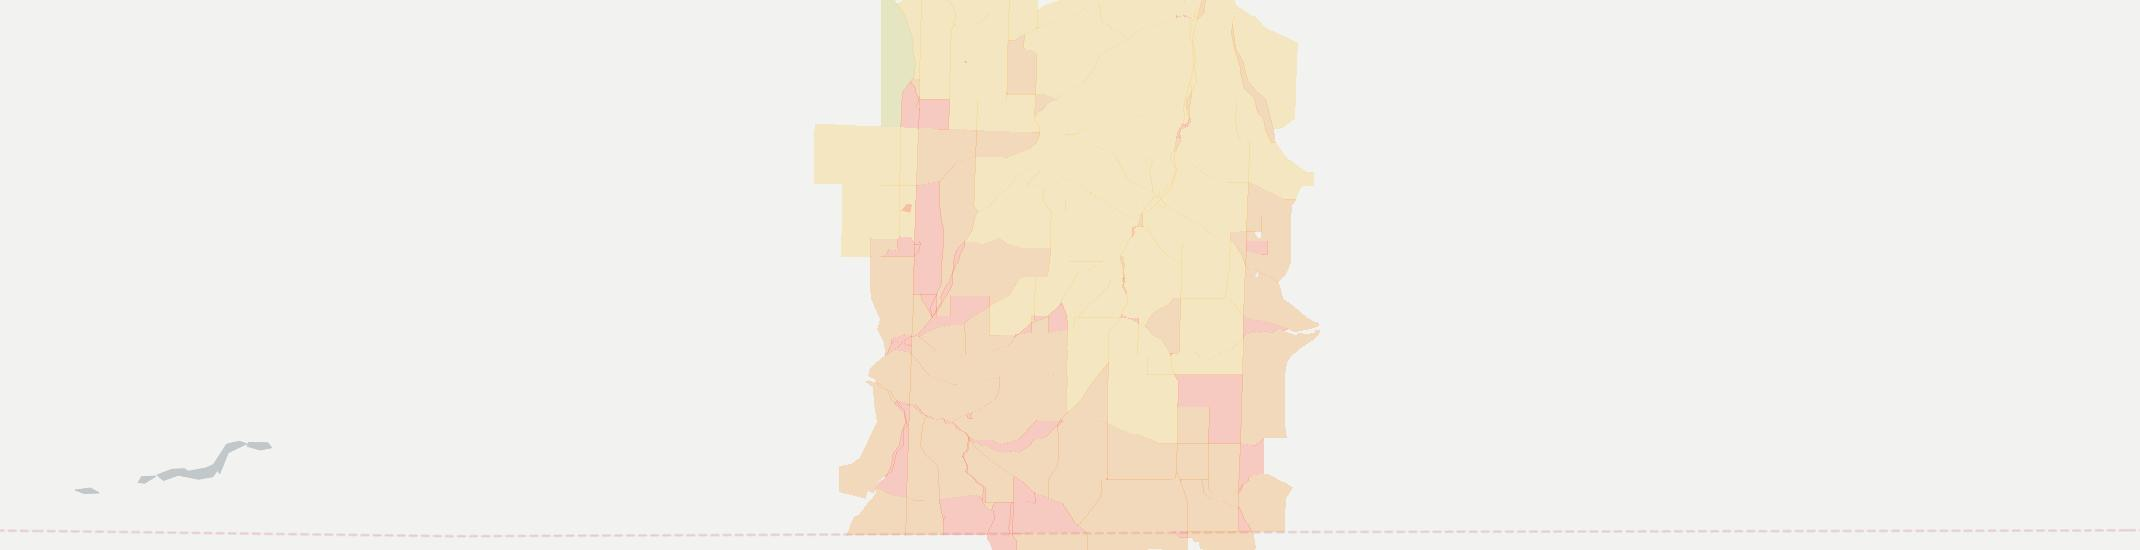 Rexville Internet Competition Map. Click for interactive map.